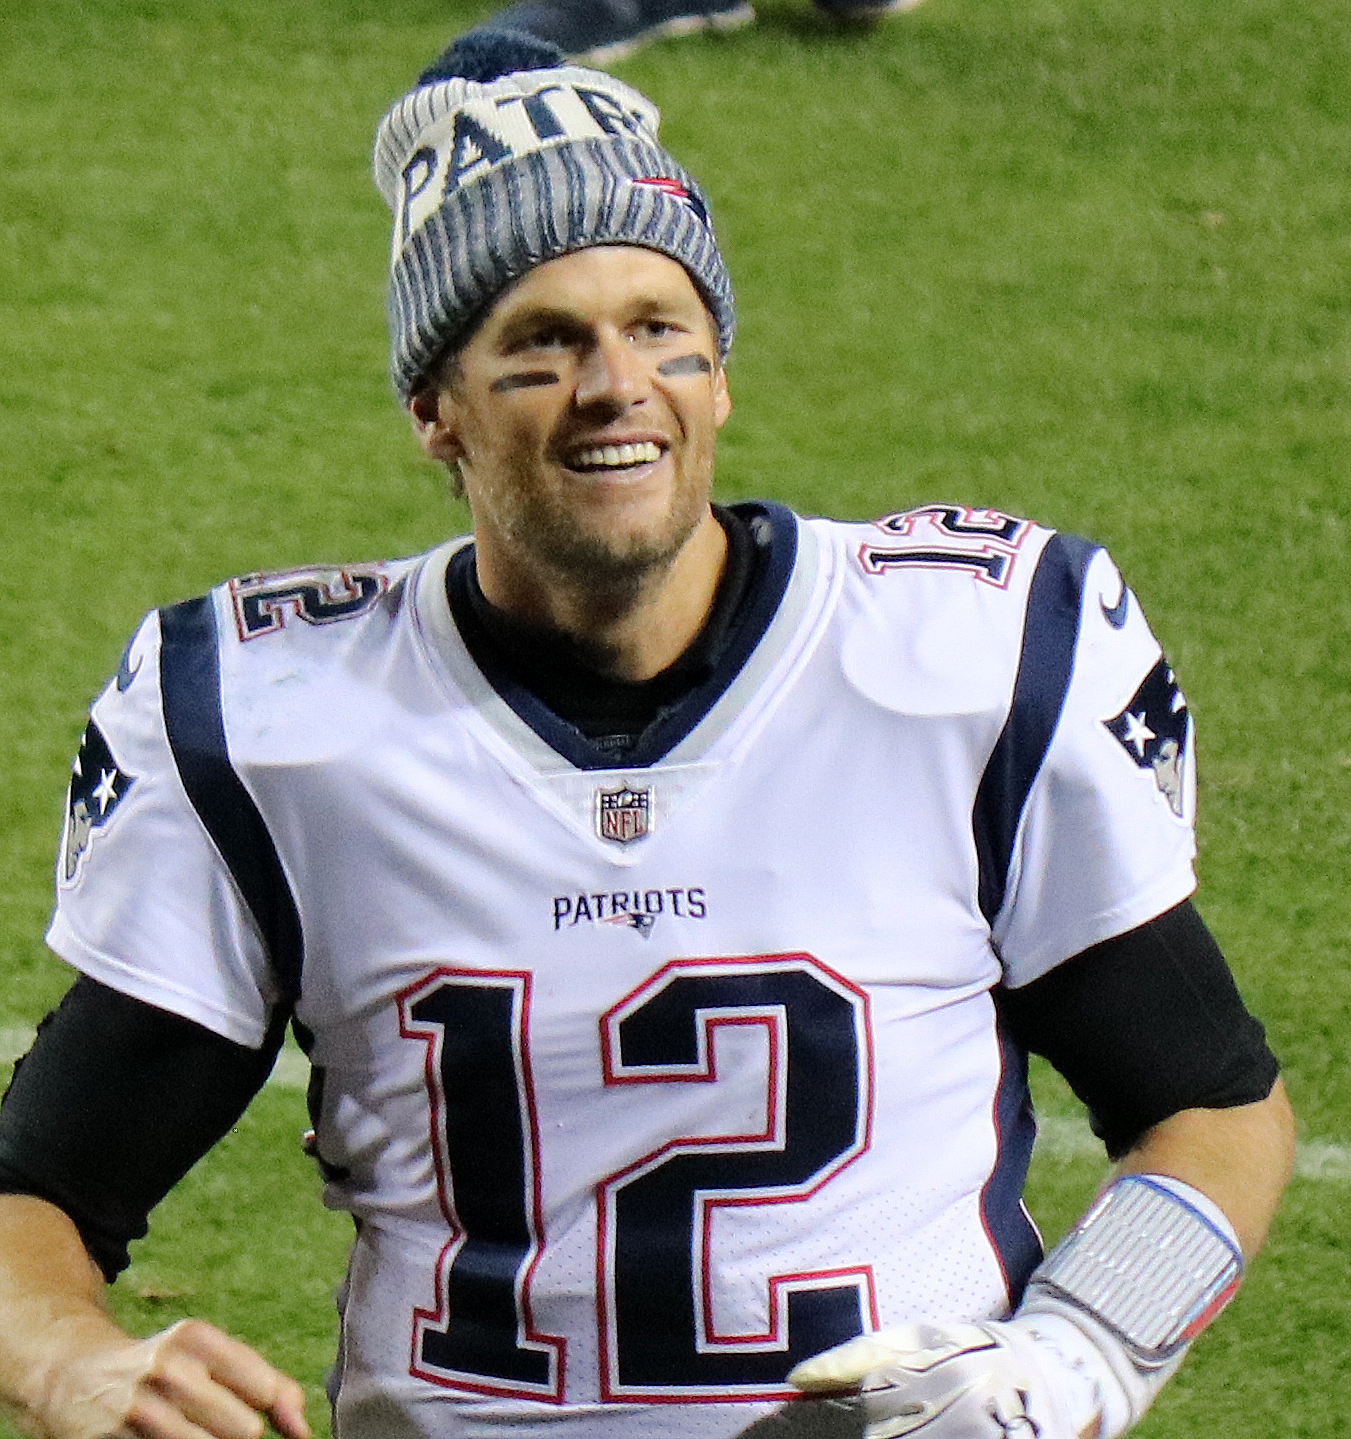 Tom Brady, quarterback of the New England Patriots is ready to lead his team to another Superbowl victory